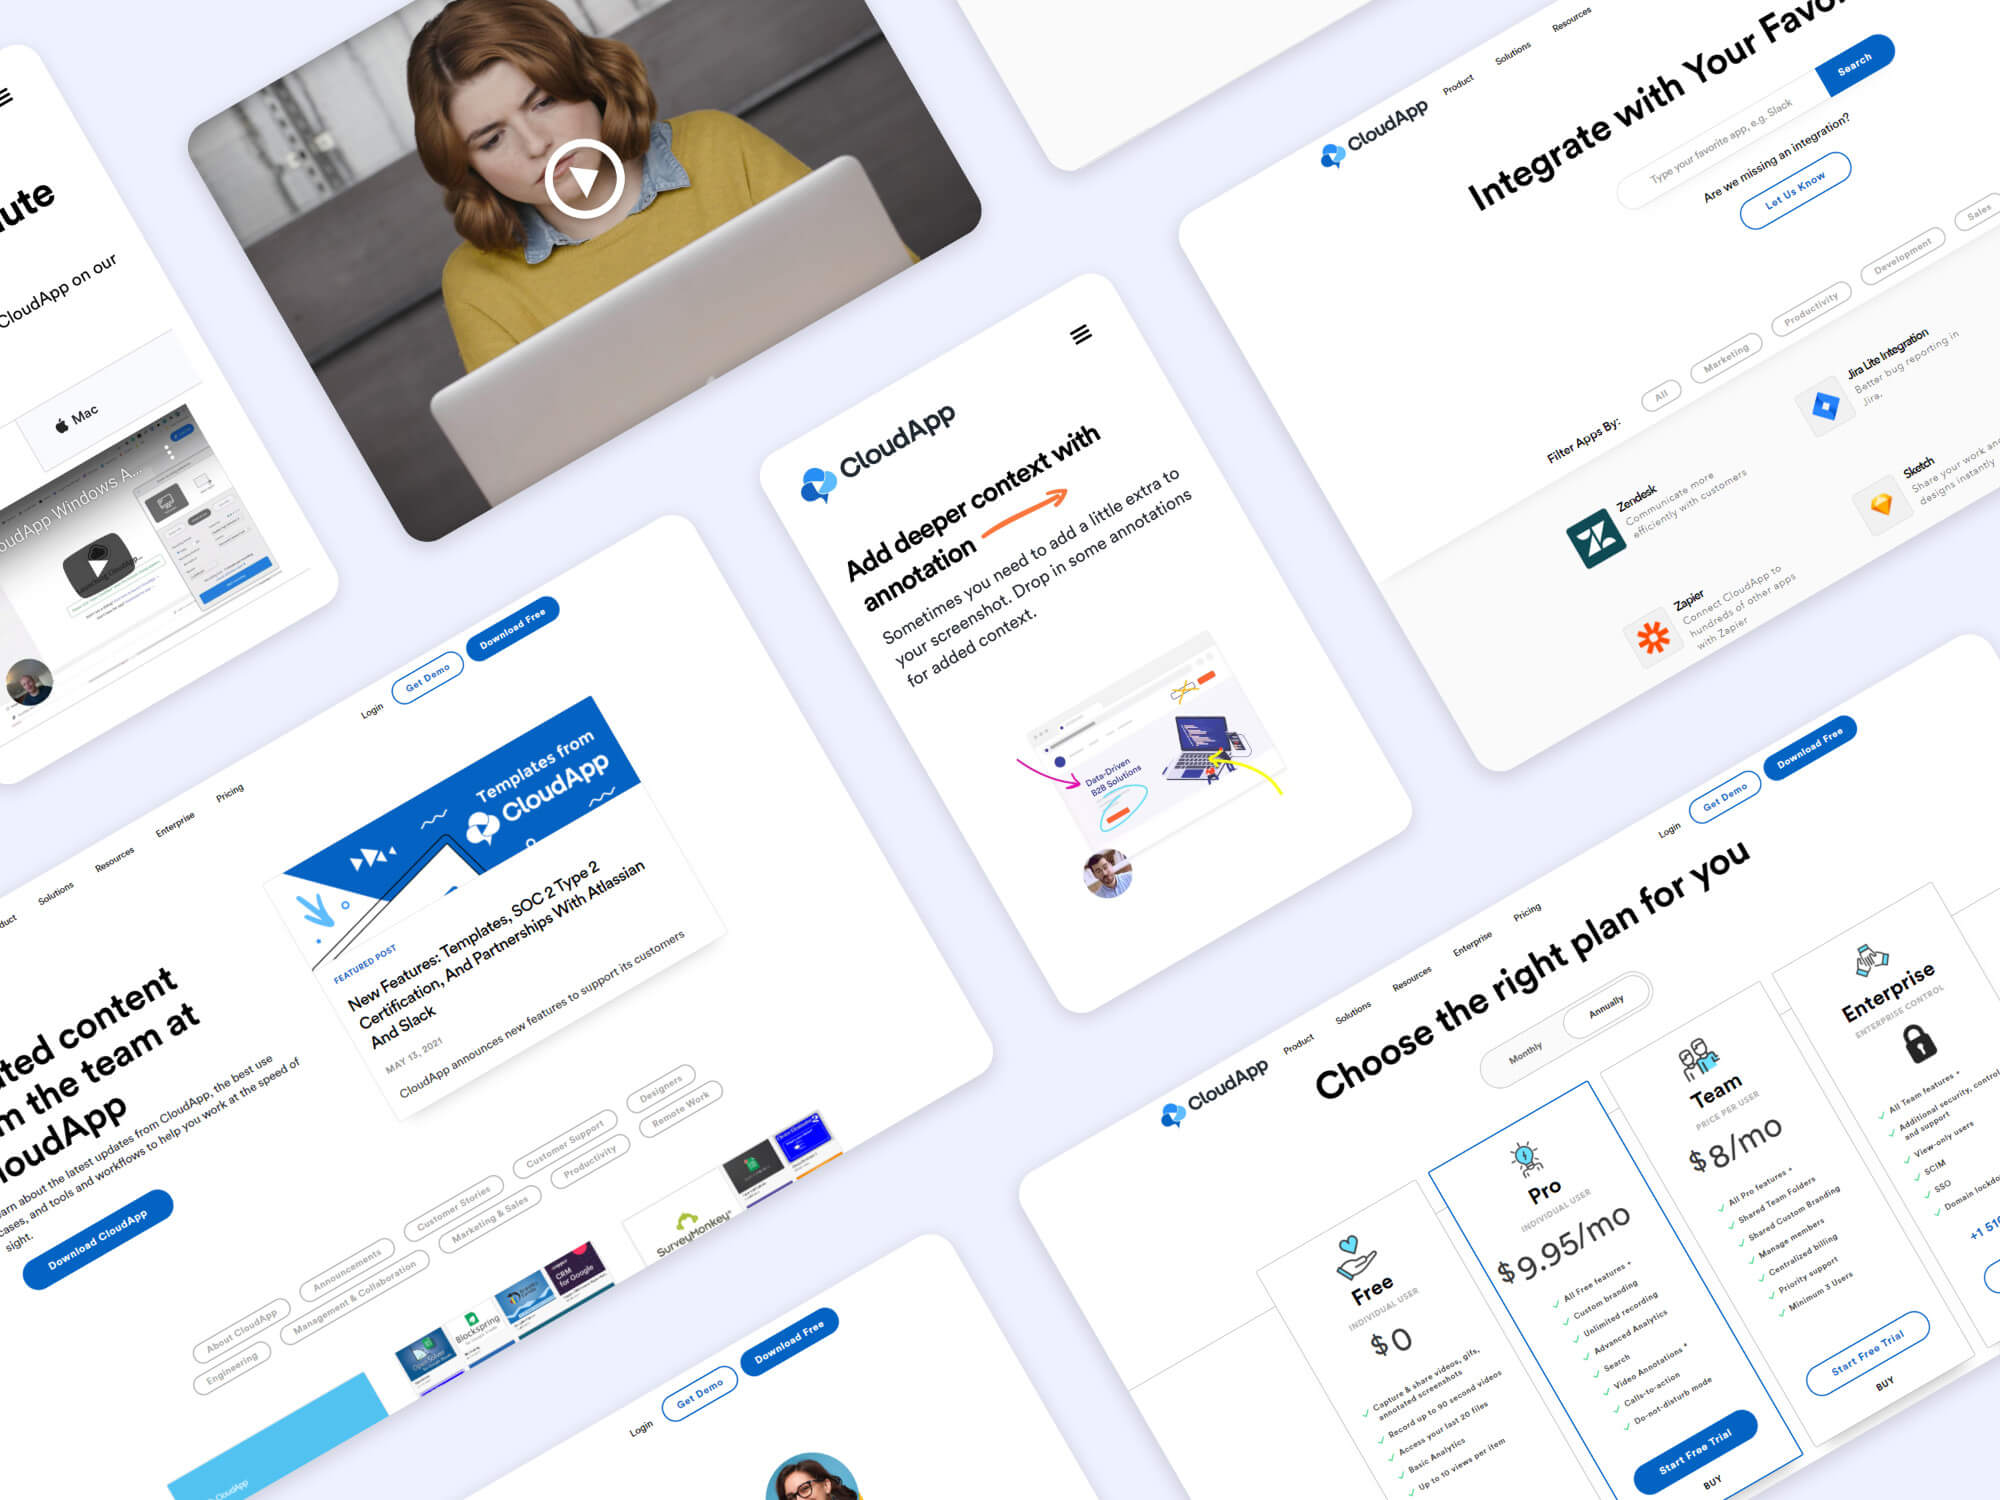 Collage showing CloudApp's marketing site and brand assets